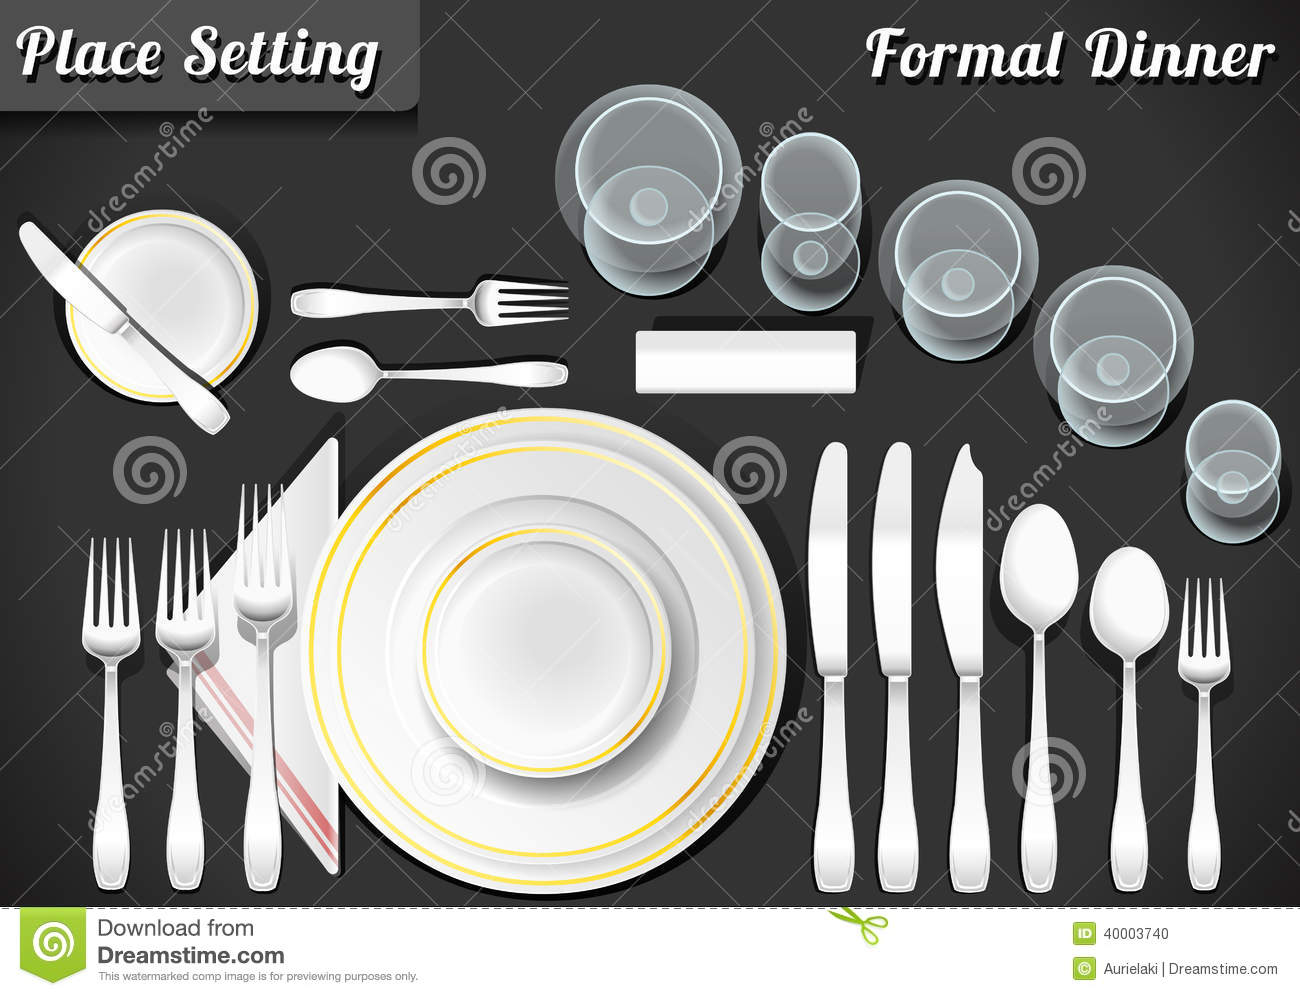 Tischgedeck Clipart Set Of Place Setting Formal Dinner Stock Vector